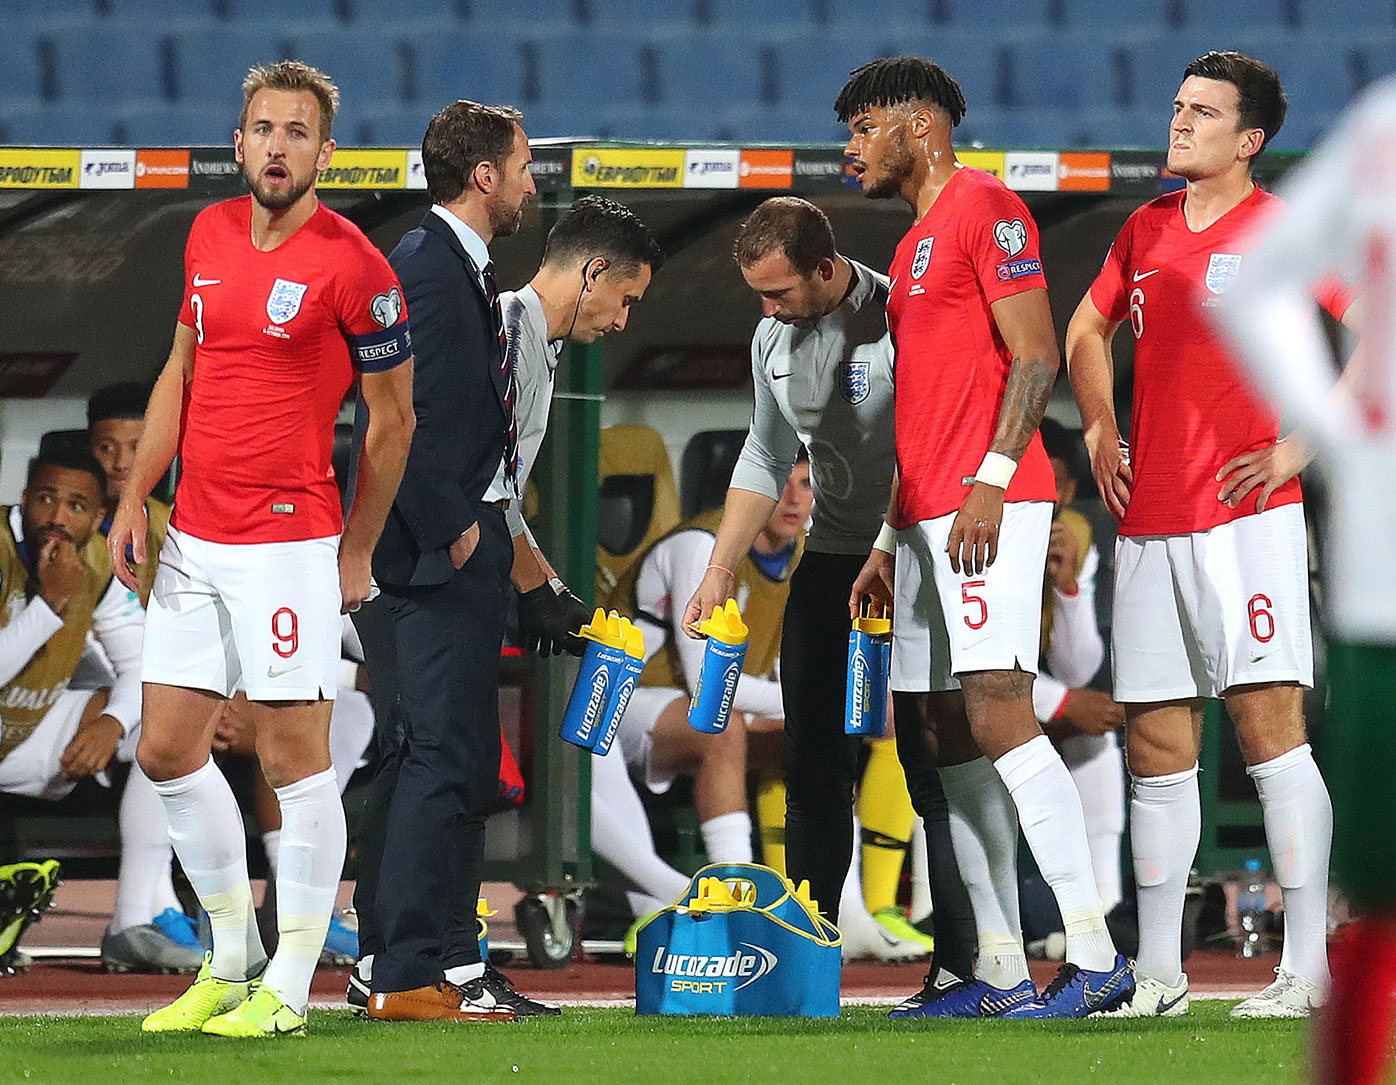 'Absolutely disgusting': England game stopped by 'abhorrent' racism drama